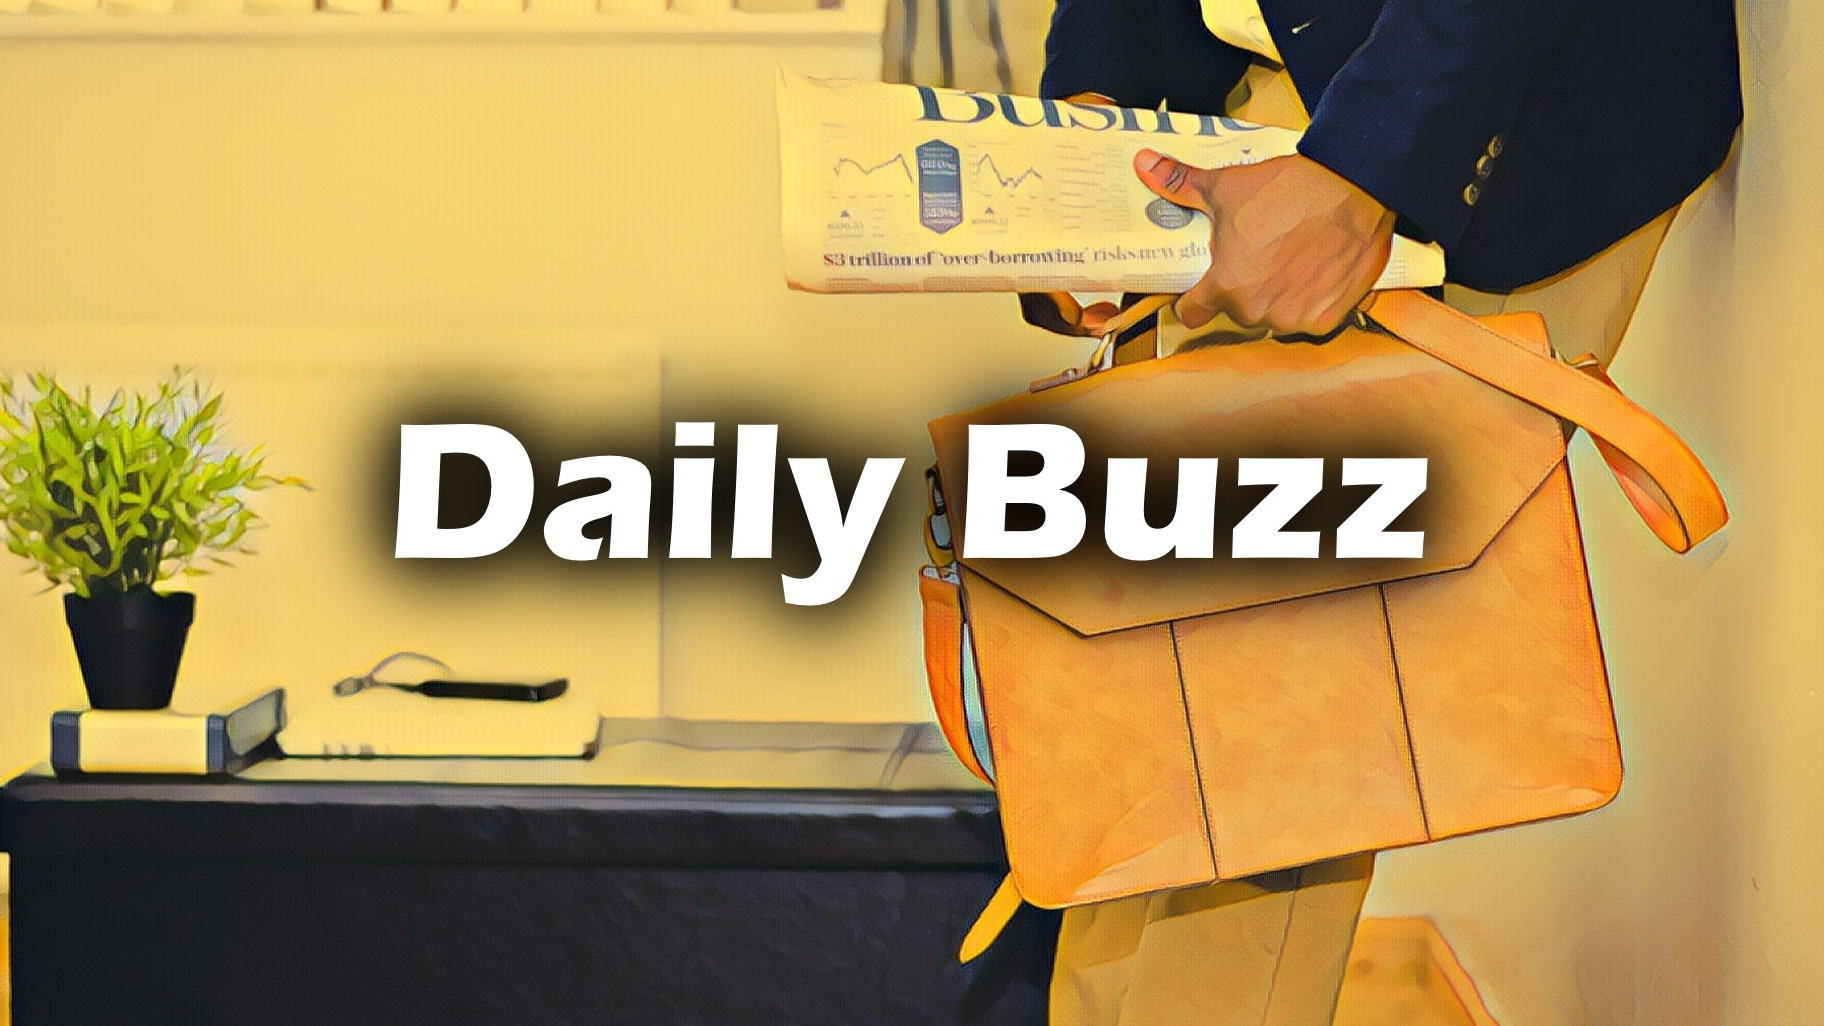 DailyBuzz Wednesday 10 October 2018